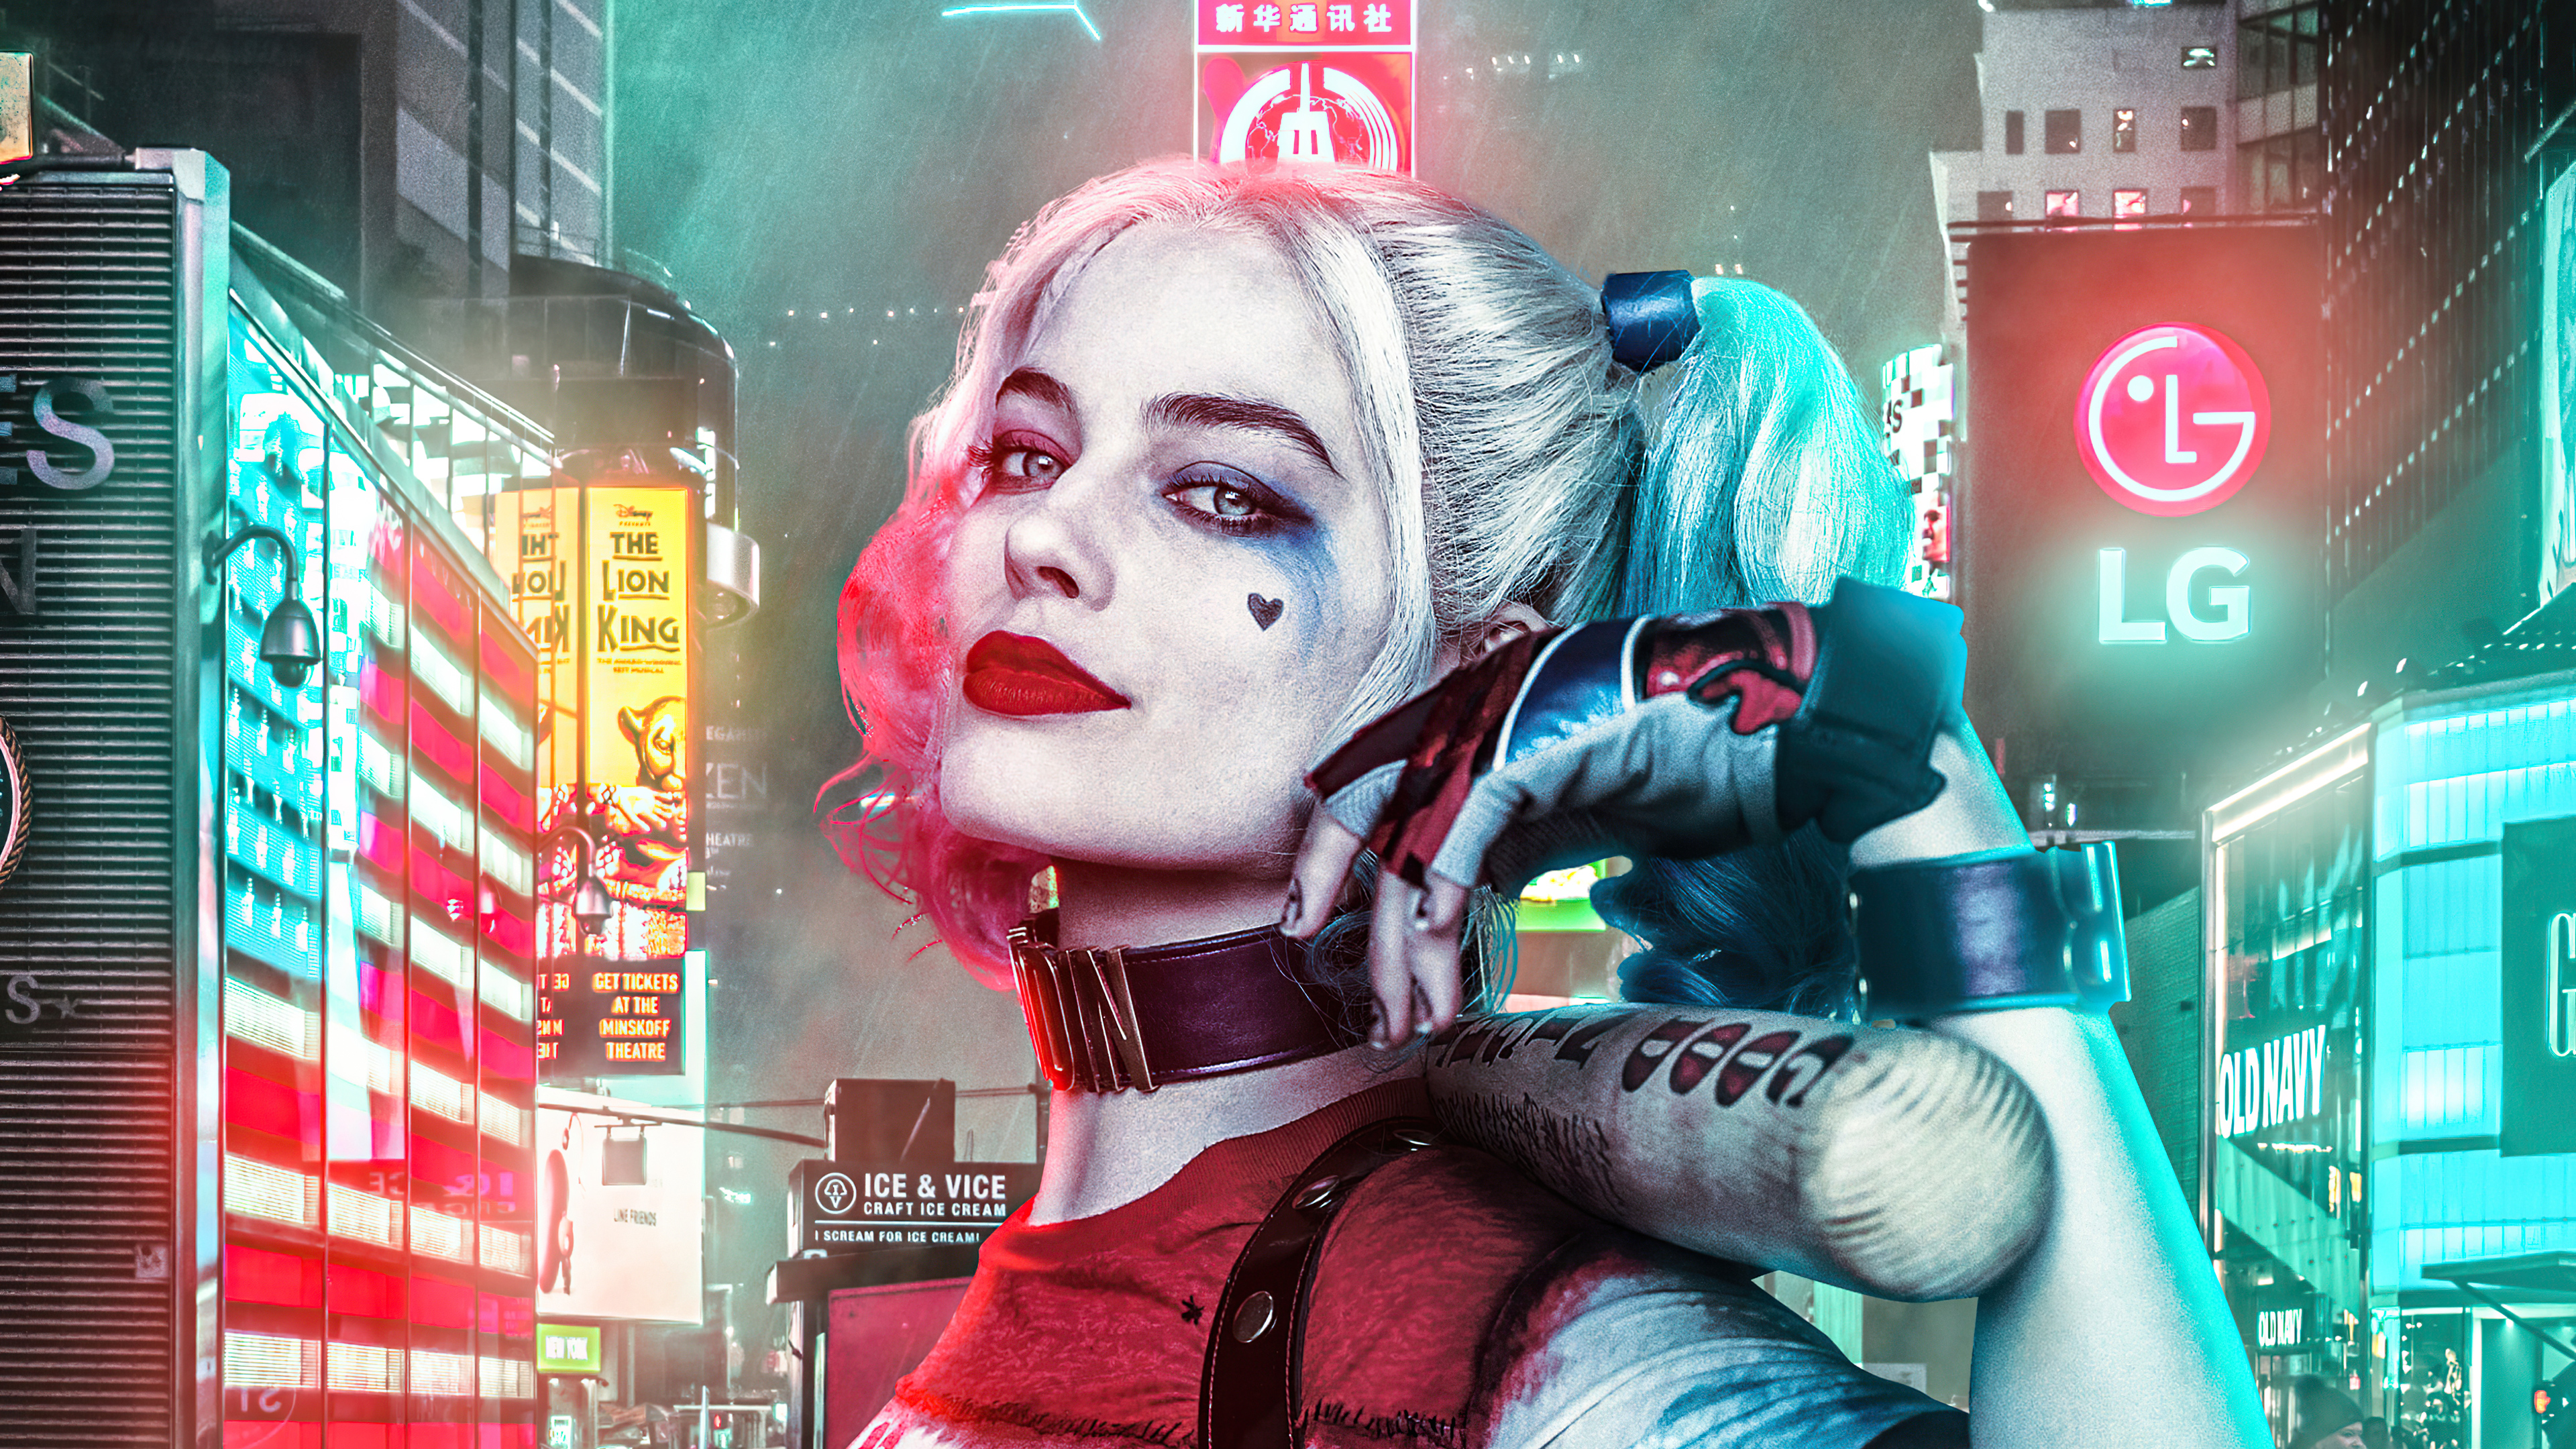 harley quinn with baseball in city 4k 1617445746 - Harley Quinn With Baseball In City 4k - Harley Quinn With Baseball In City 4k wallpapers